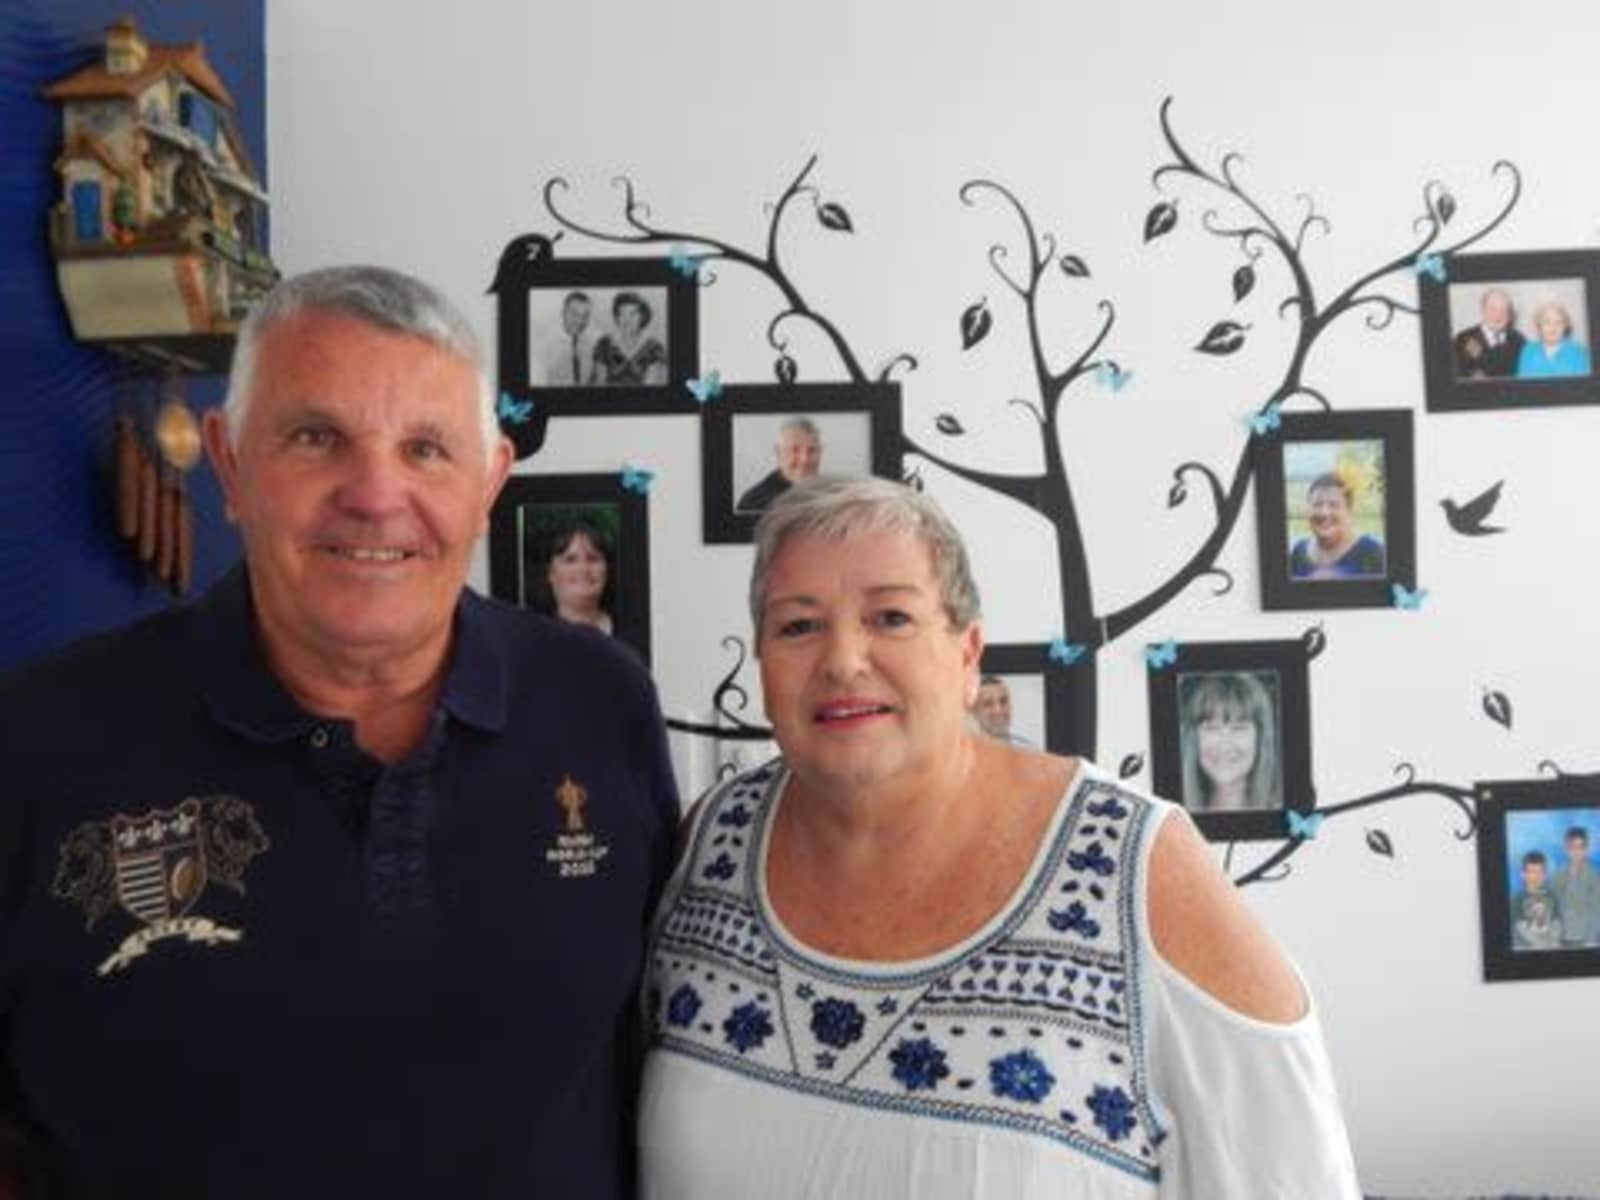 Wendy & Michael from Russell Island, Queensland, Australia